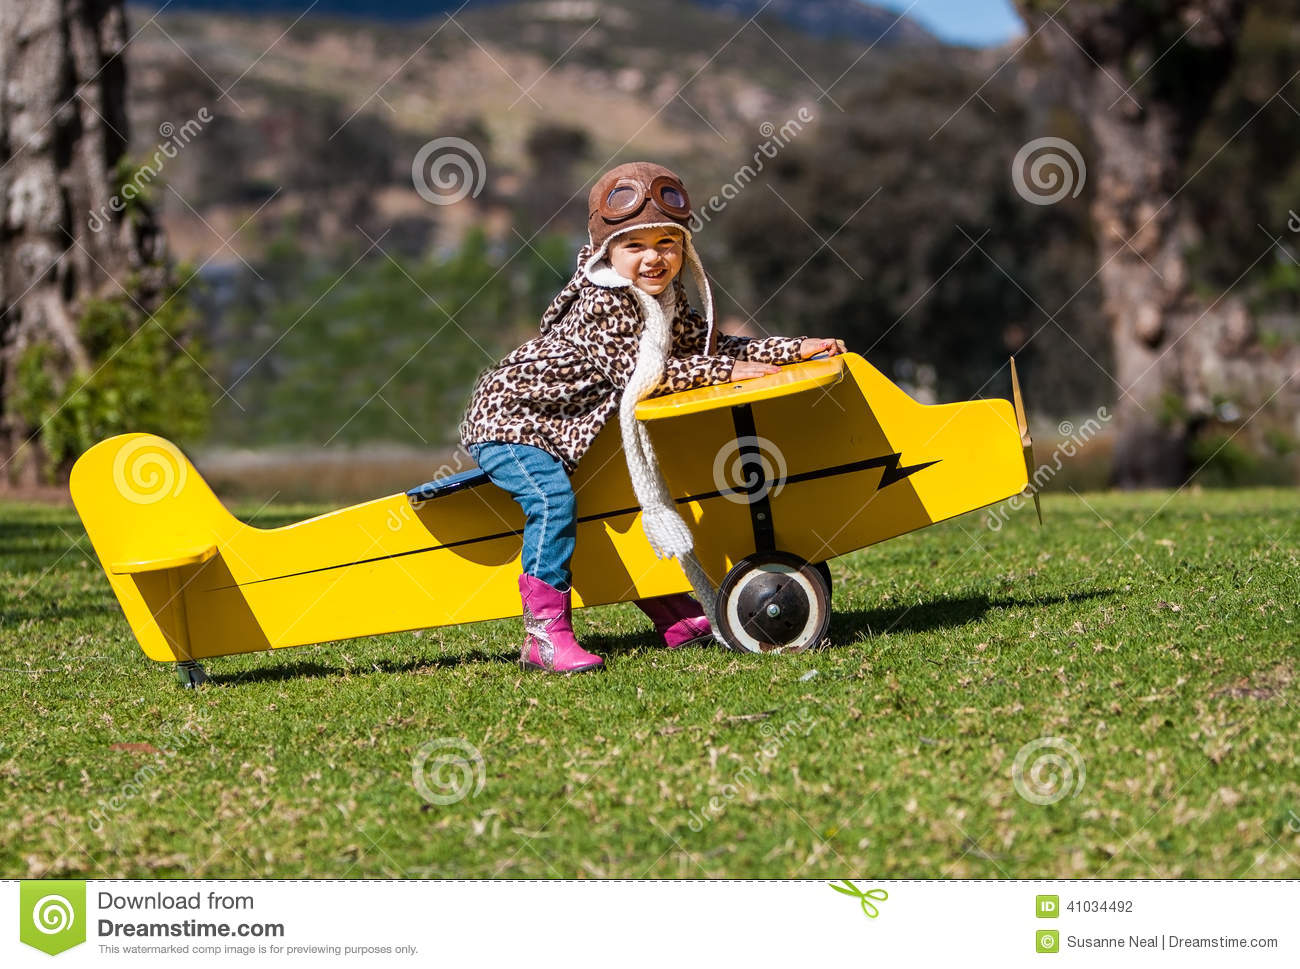 Airplane Toys For 3 Year Olds : Three year old girl on yellow toy airplane outdoors stock